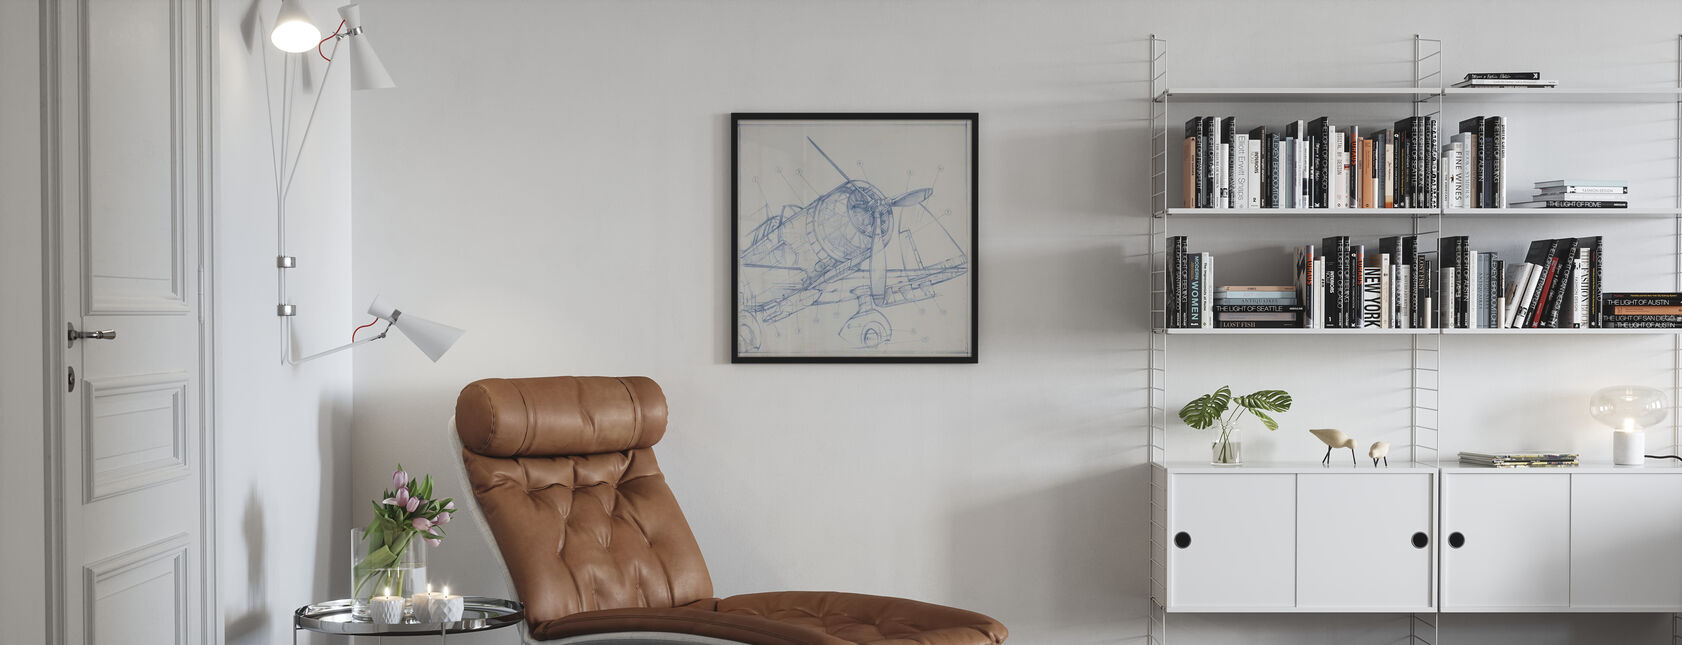 Airplane Mechanical Sketch - Poster - Living Room